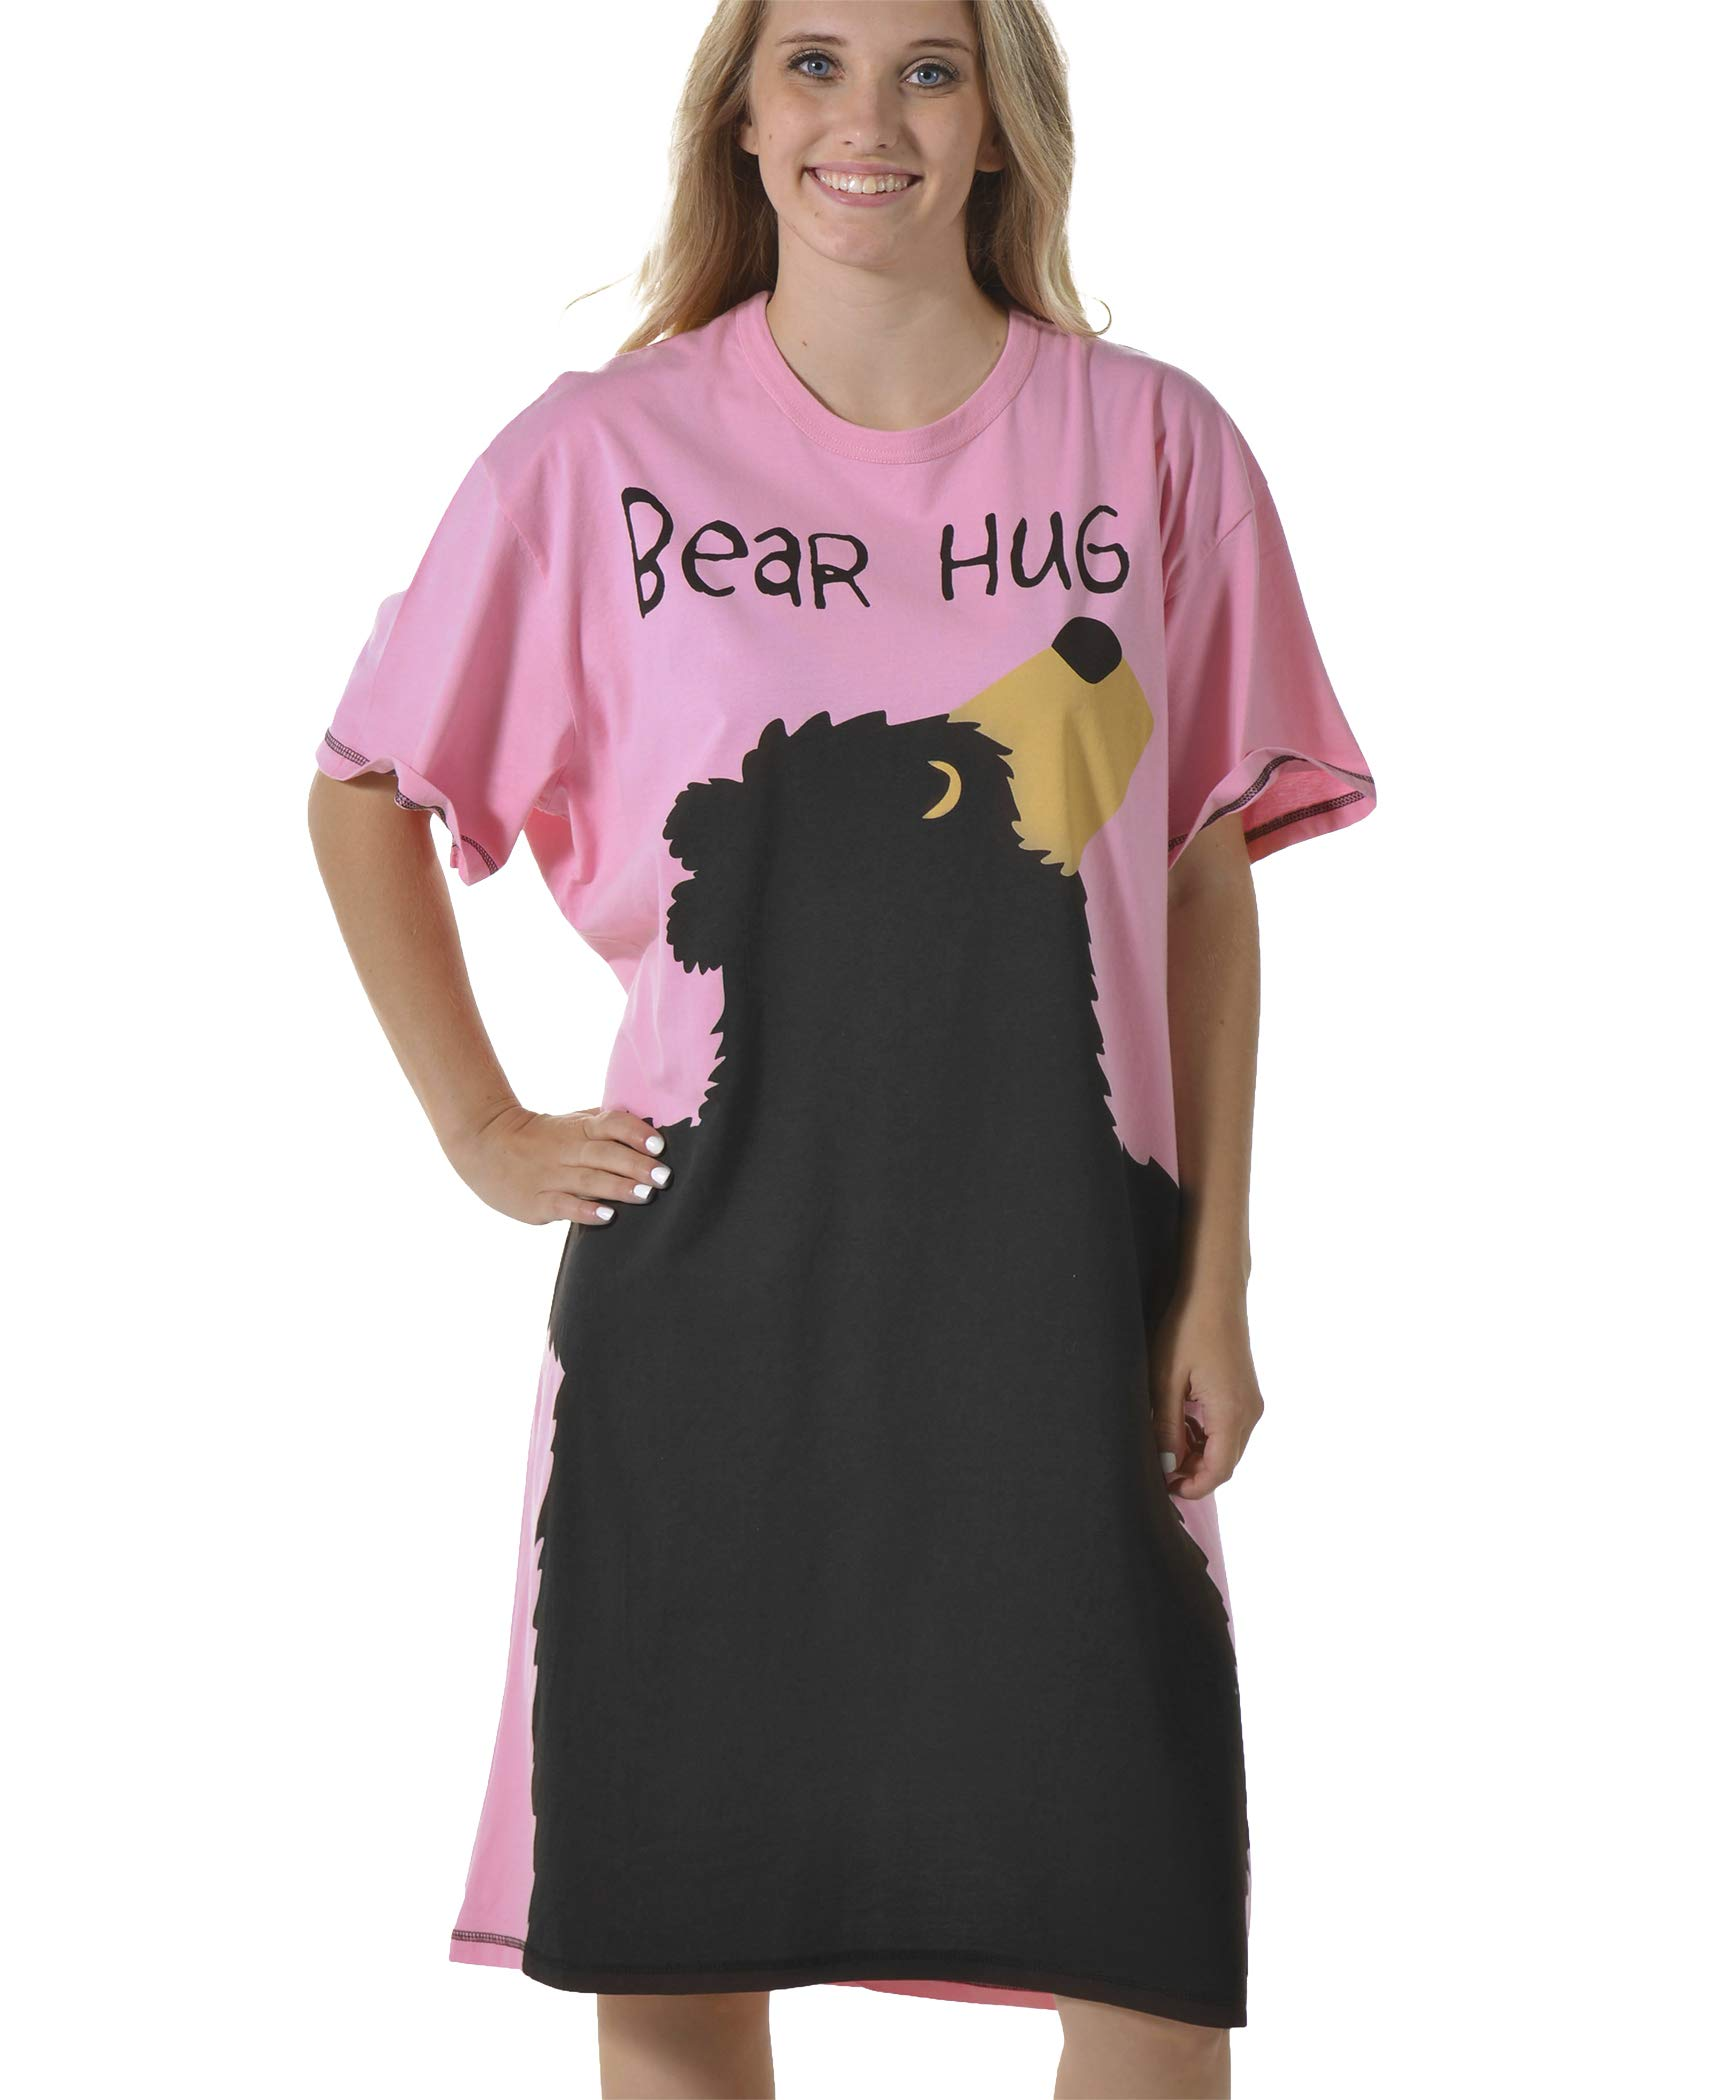 e75a39499f Best Rated in Women s Novelty Nightgowns   Sleepshirts   Helpful ...